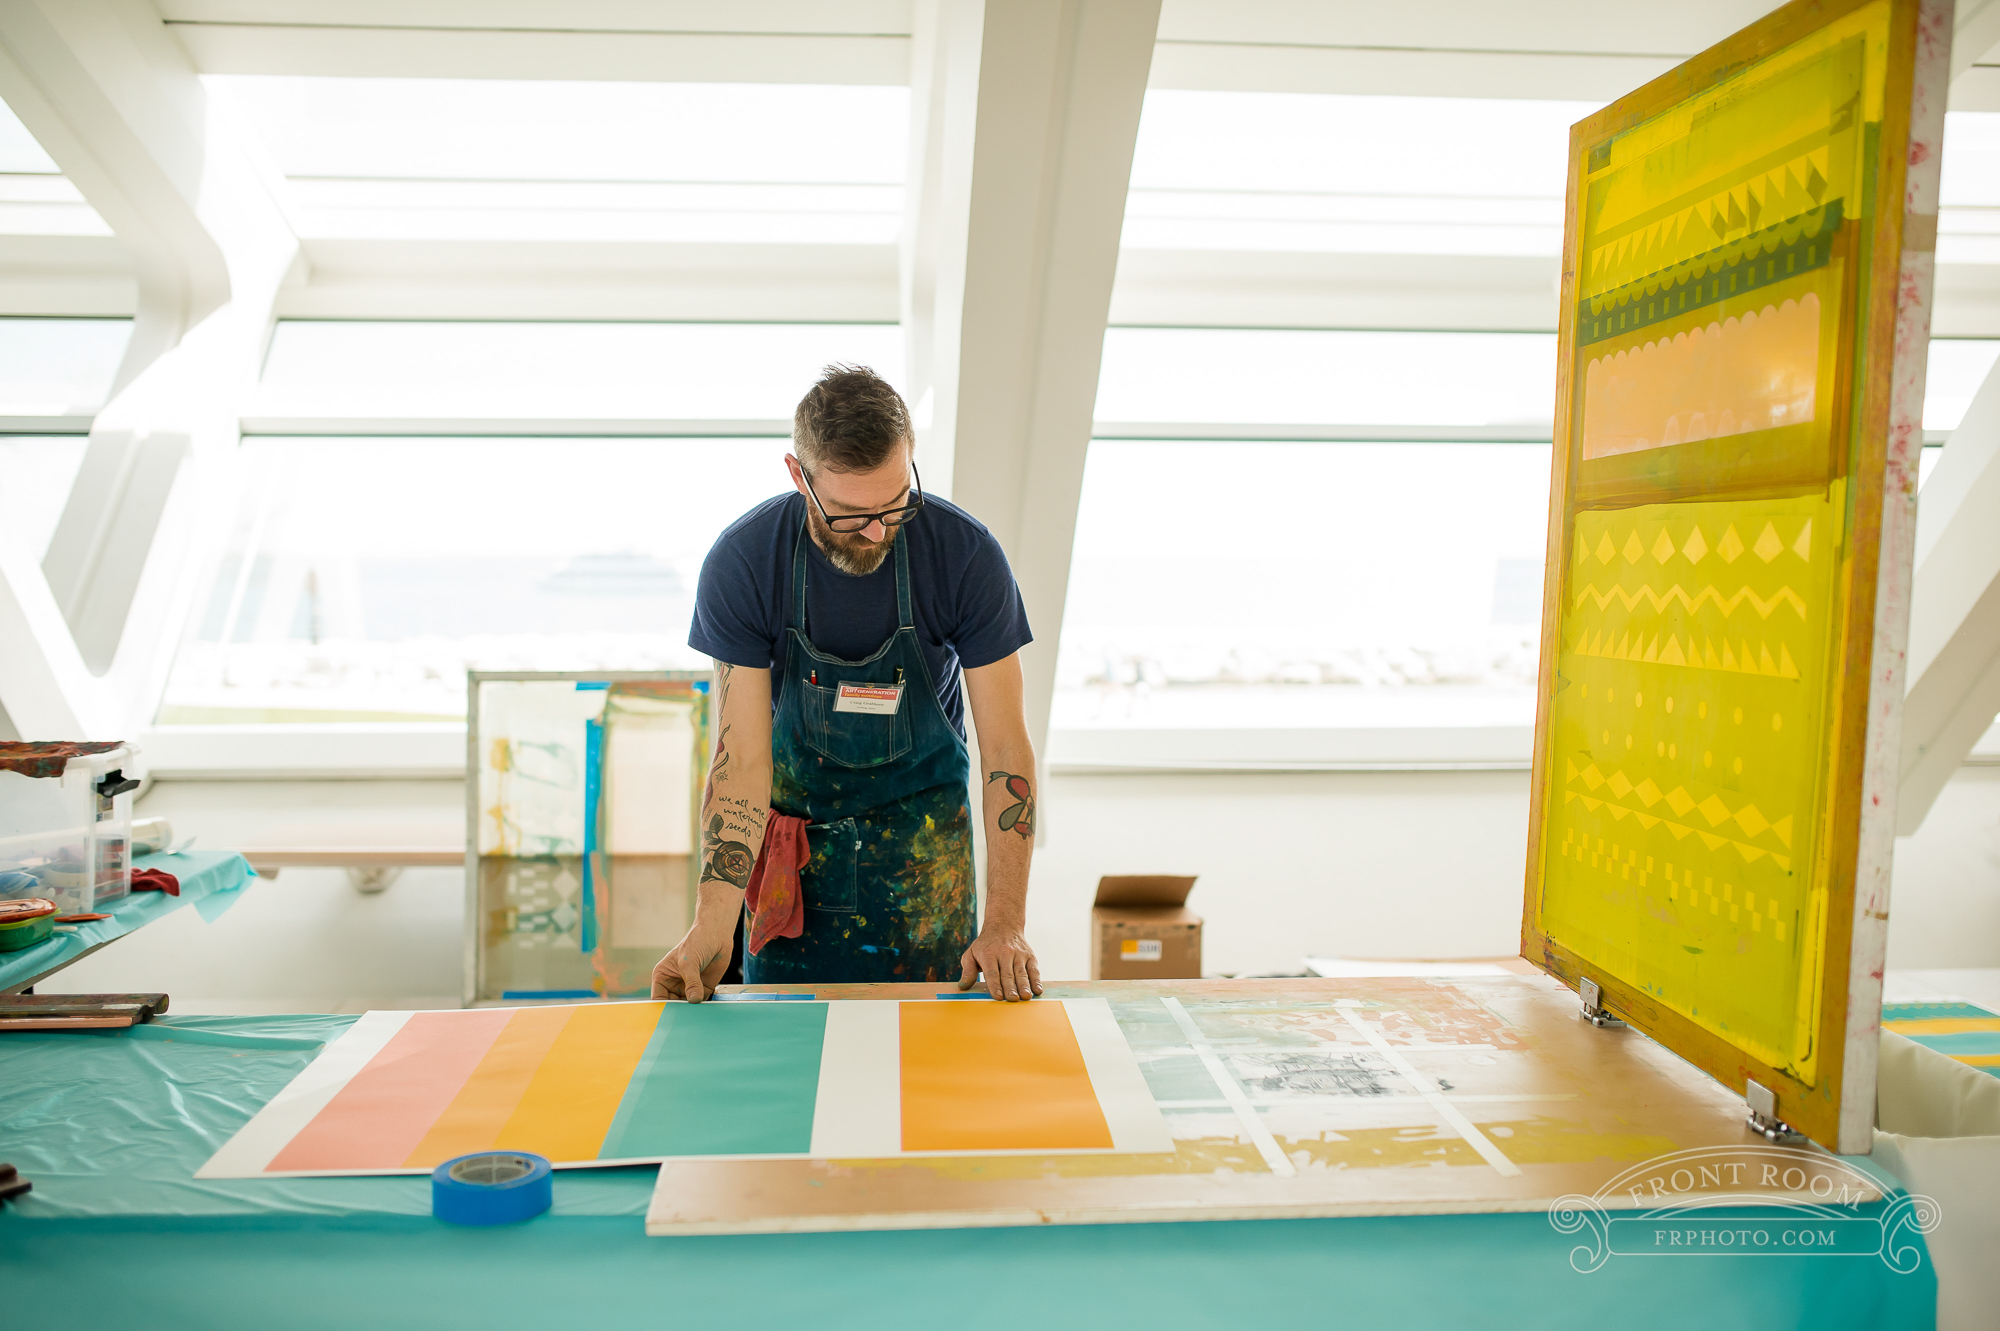 Live studio share, working on tapestry prints at Milwaukee Art Museum.